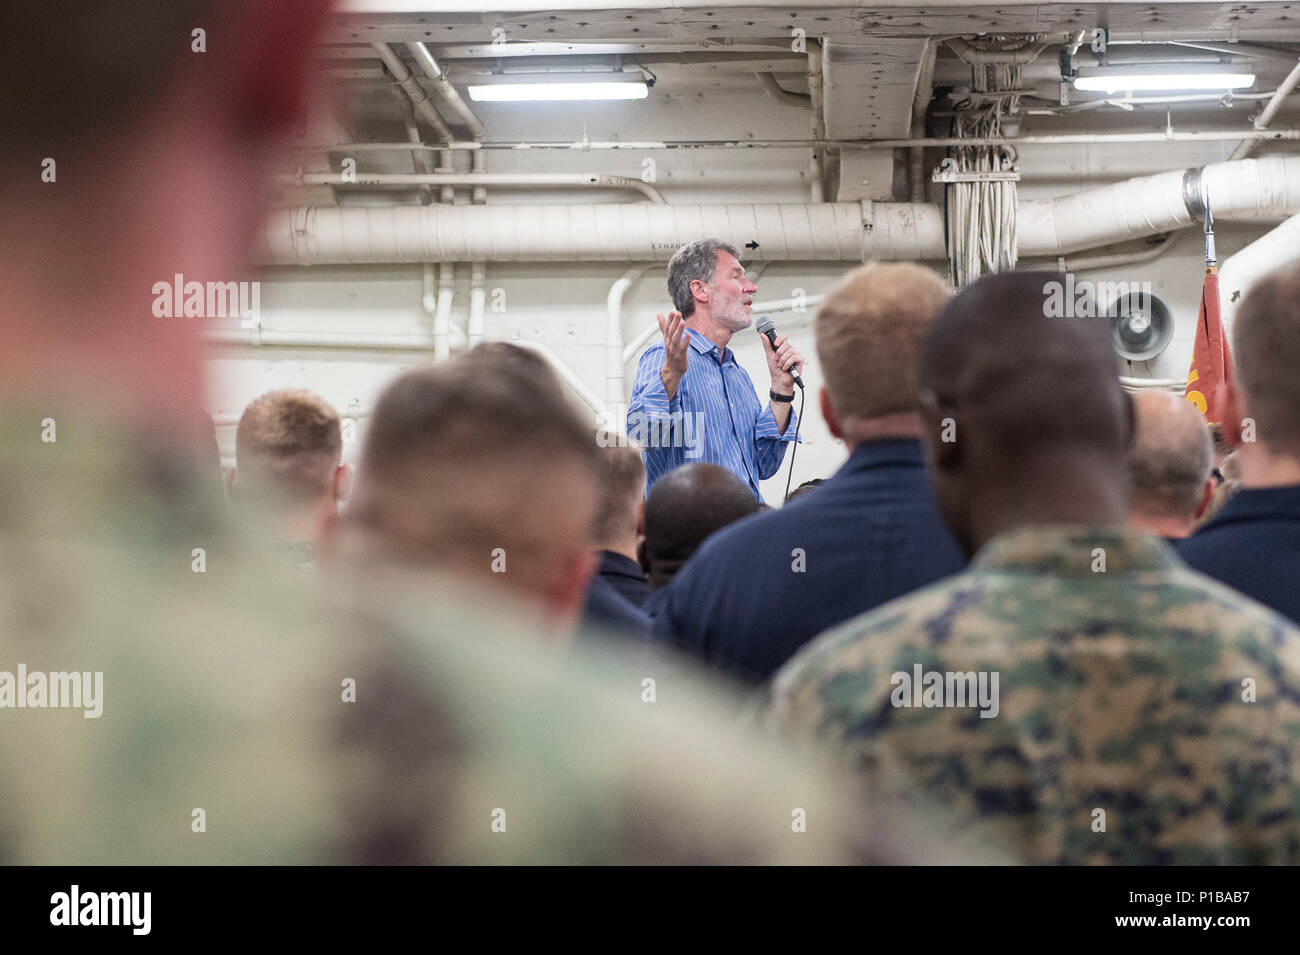 291 M Stock Photos Images Alamy 1009 Military Wiring Harness Diagram 161009 N Nx690 Caribbean Sea Oct 9 2016